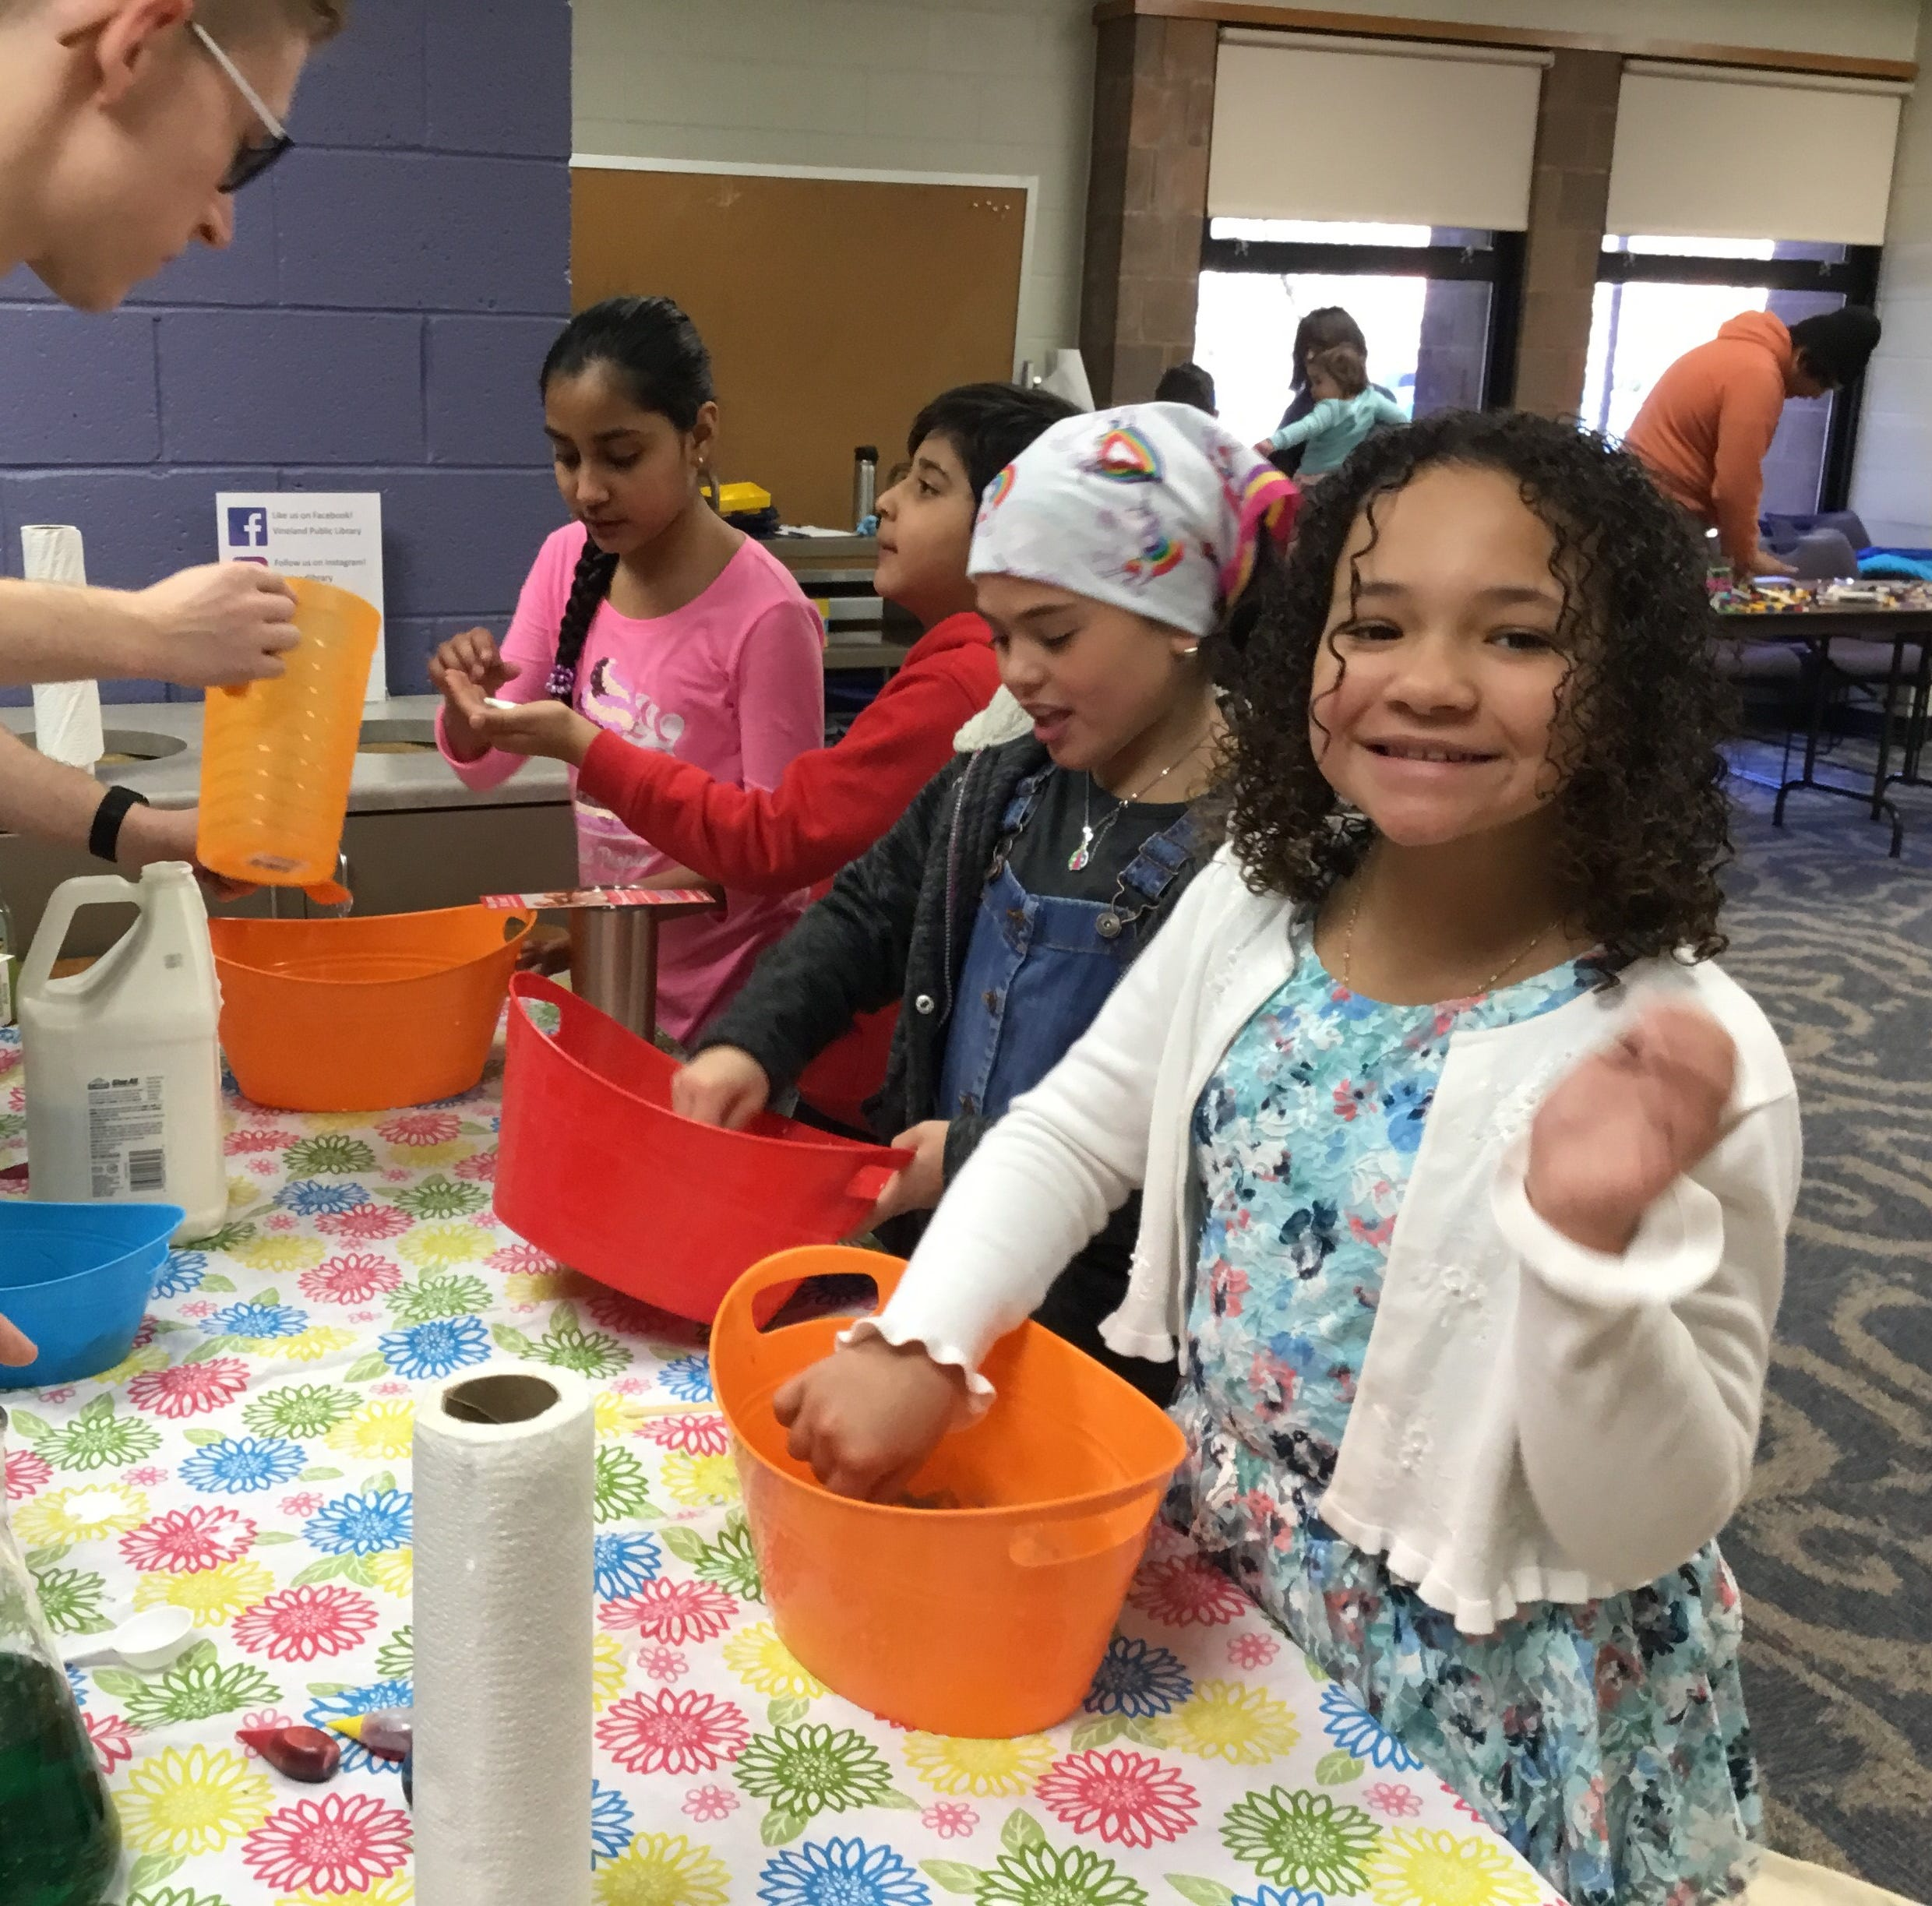 Vineland library hosts fun STEM event